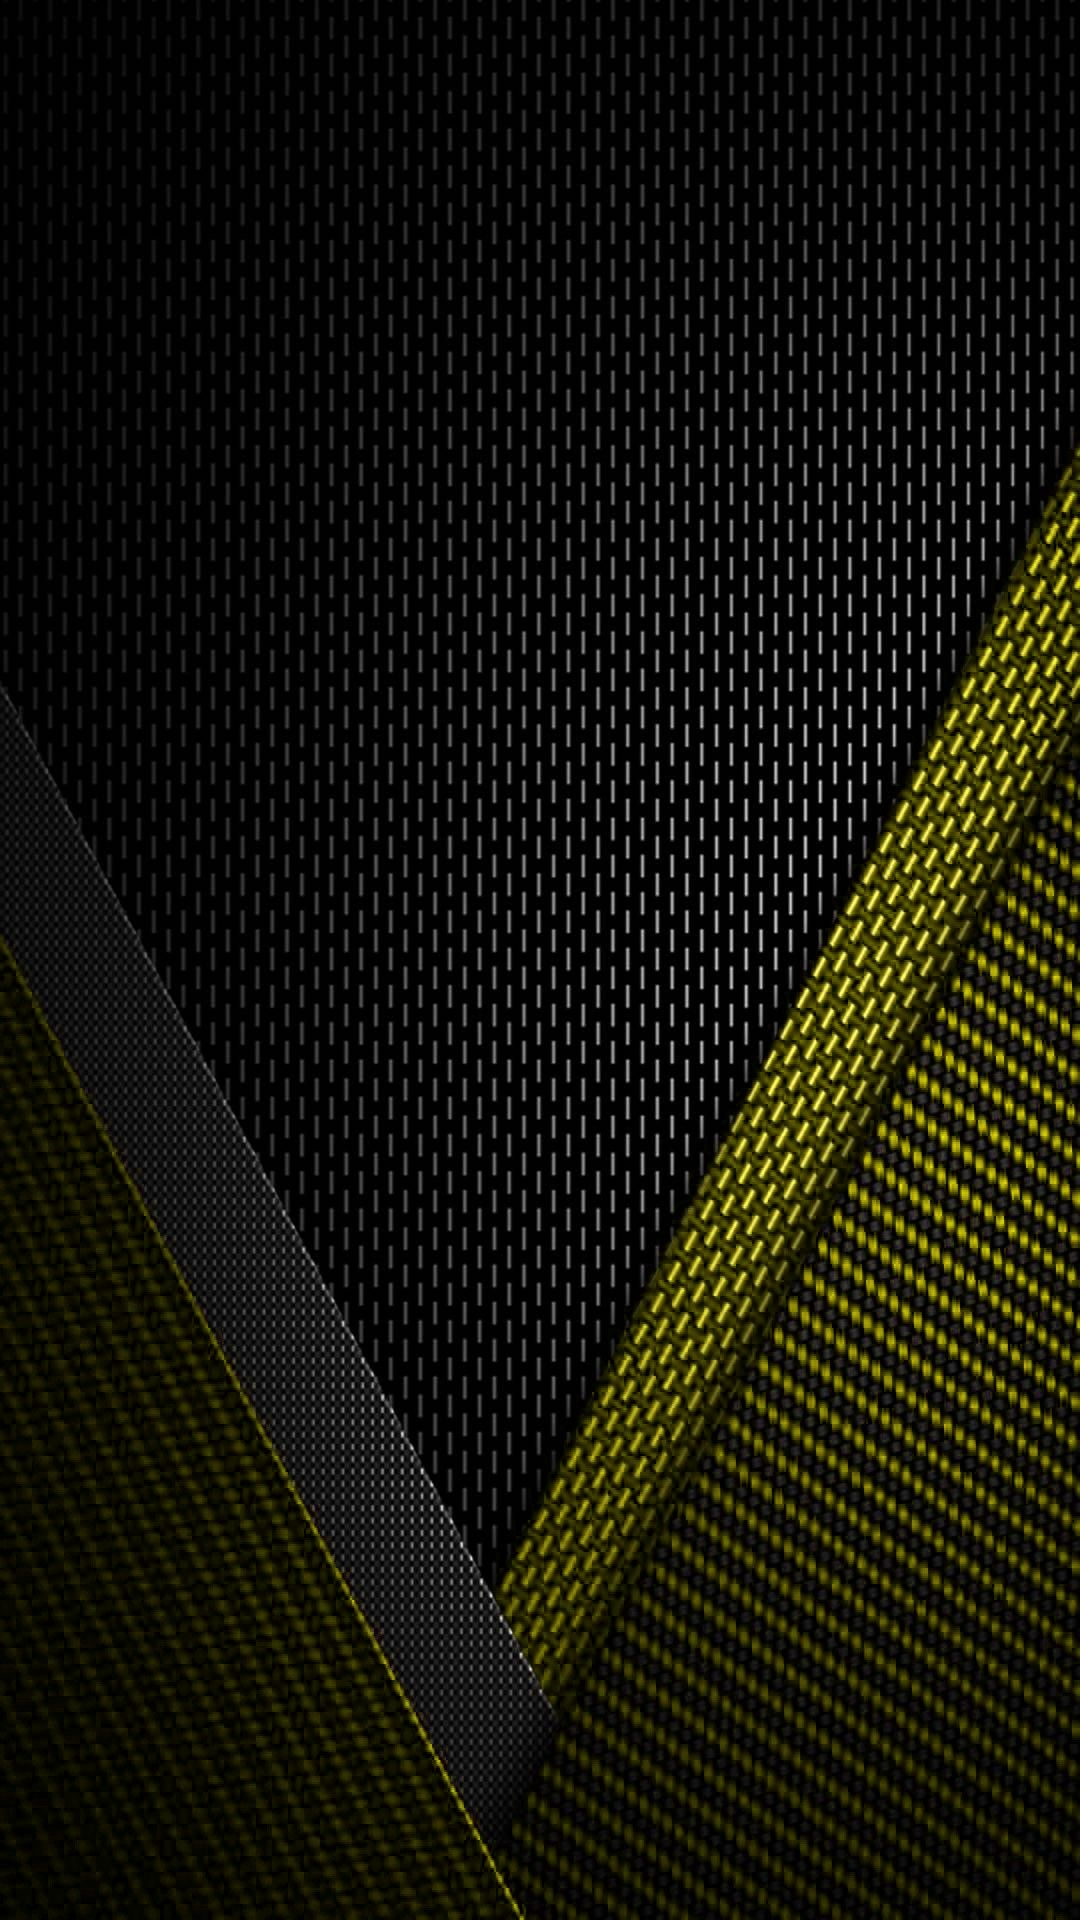 Black And Yellow Textured Wallpaper In 2019 Black Textured